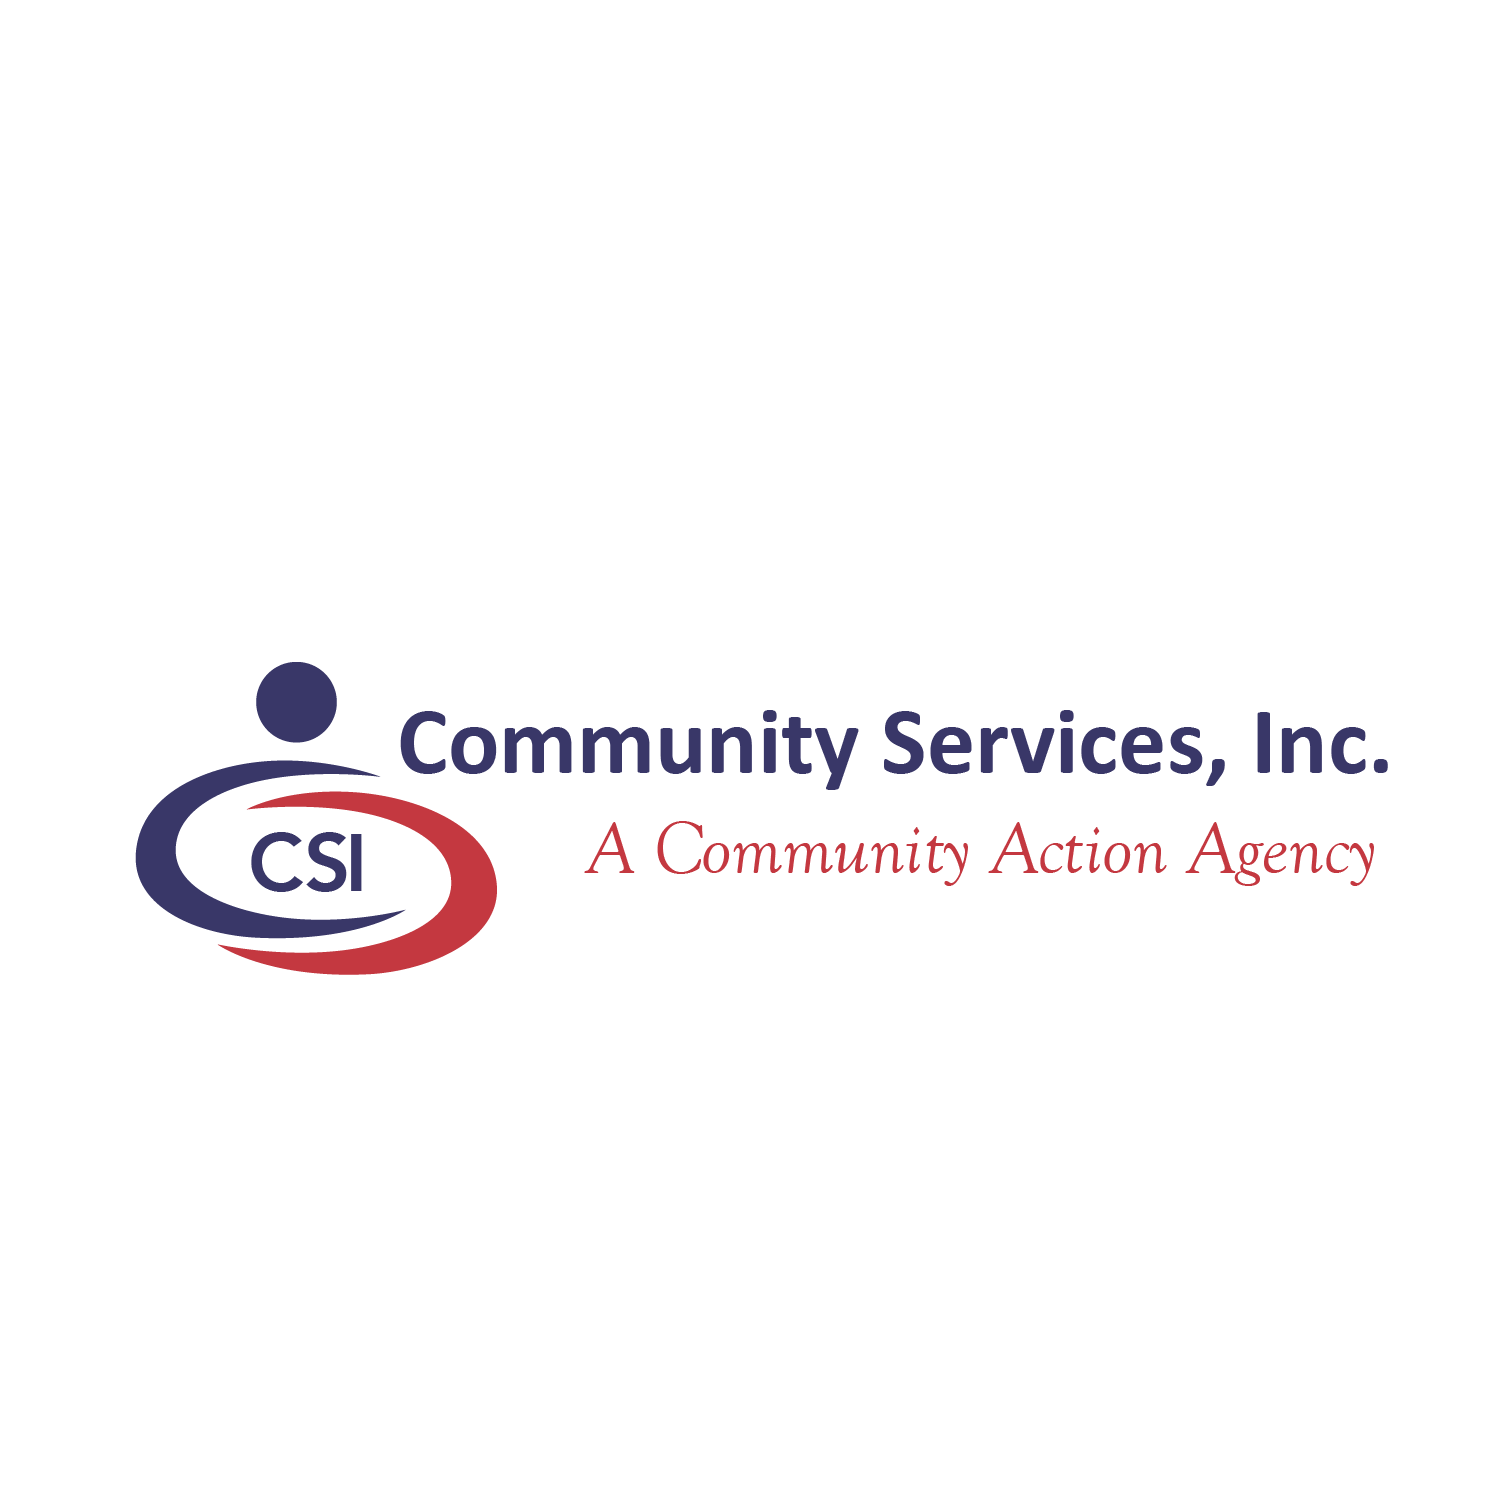 Community Services, Inc. provides support services that empower and enrich individuals, families and communities. They provide energy, transit, rental and meal assistance.   Income, Adult Education, Transportation